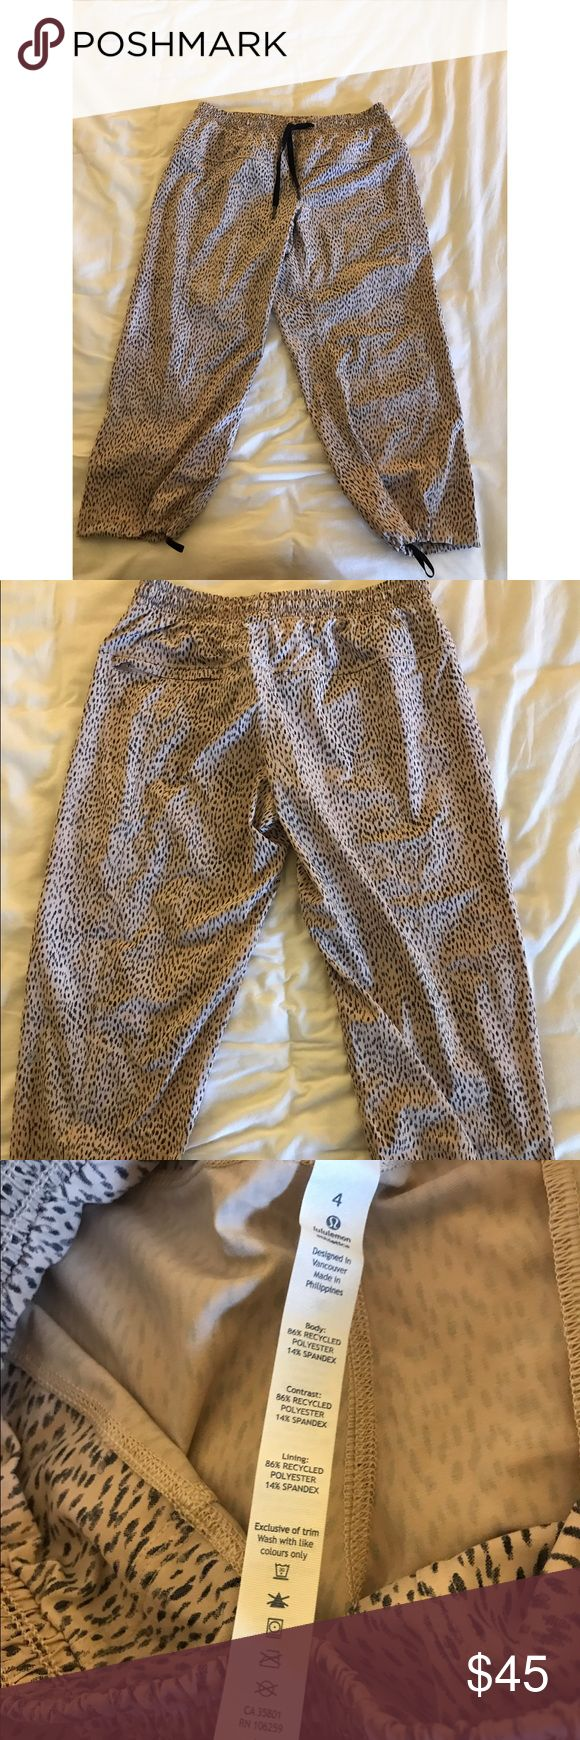 NEW Lululemon Leopard Athletic Capri Shorts/Pants • NEW WITHOUT TAGS. • size is 4. • Beautiful cream pinky hue. • Waist is 14' laying flat. Rise is 8.5'. Inseam is 17'. • Ships out same or next day. lululemon athletica Pants Capris